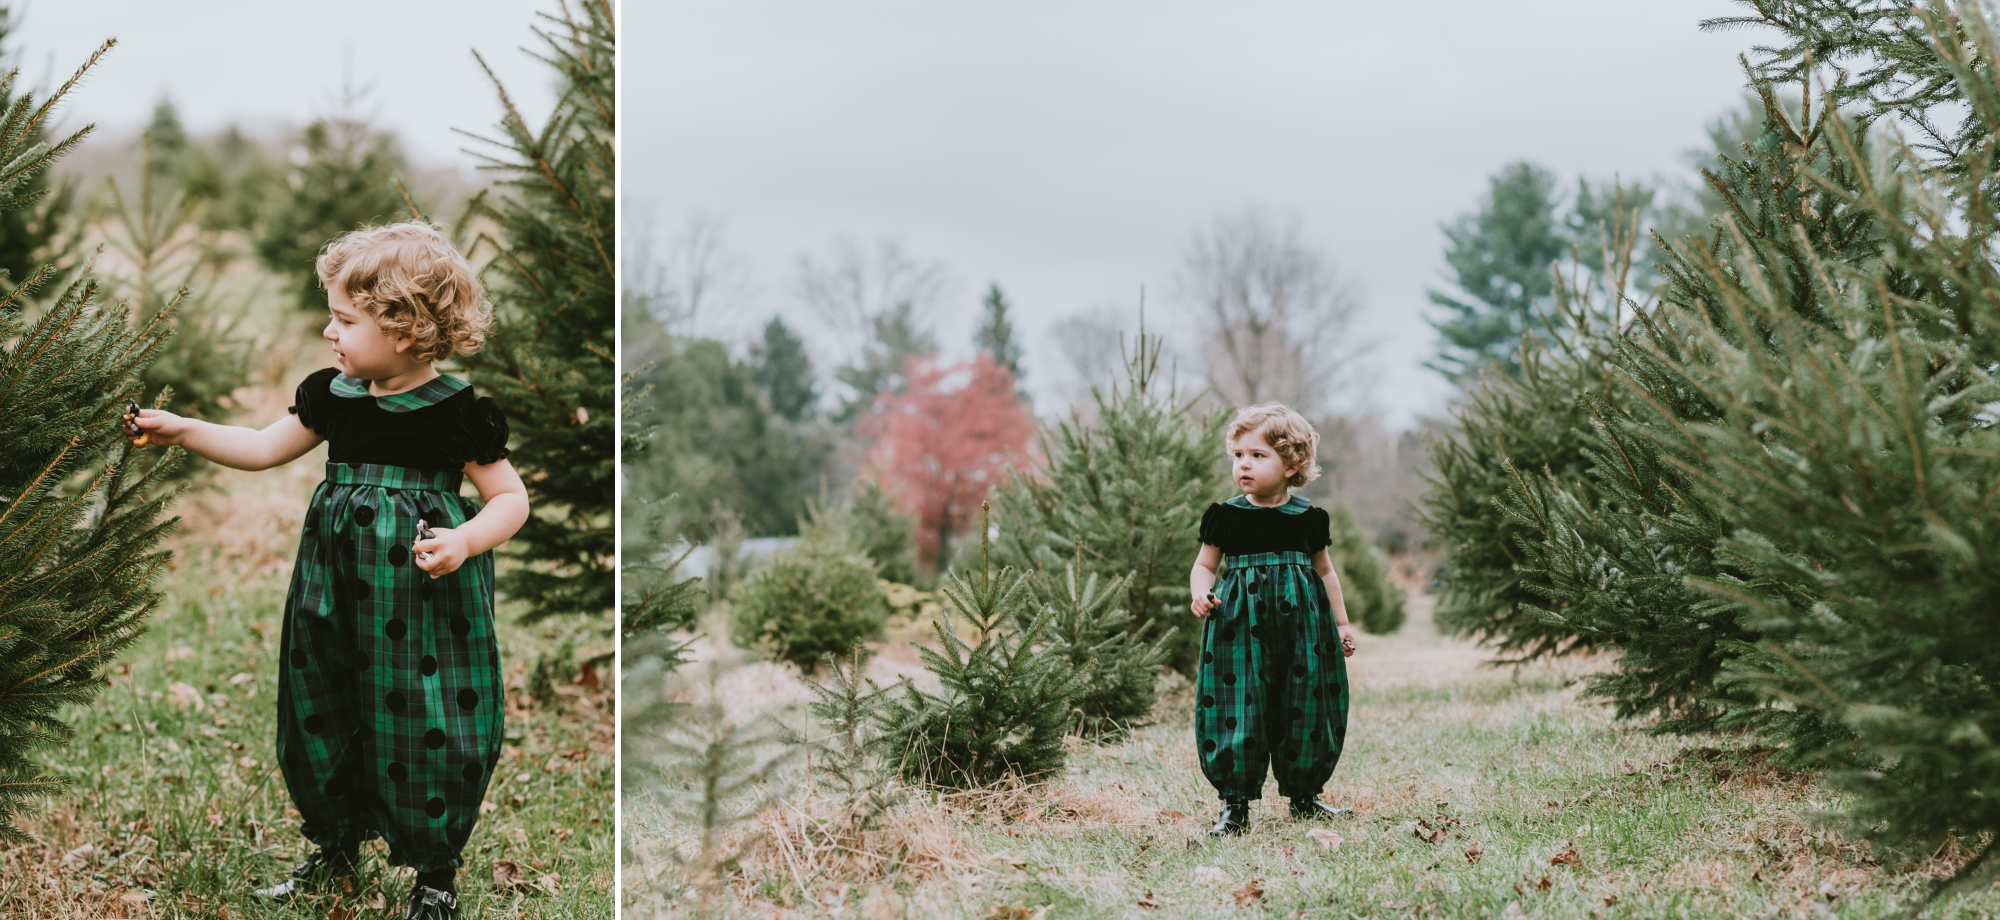 Christmas Mini Photography Session Conover's Farm, Wall New Jersey